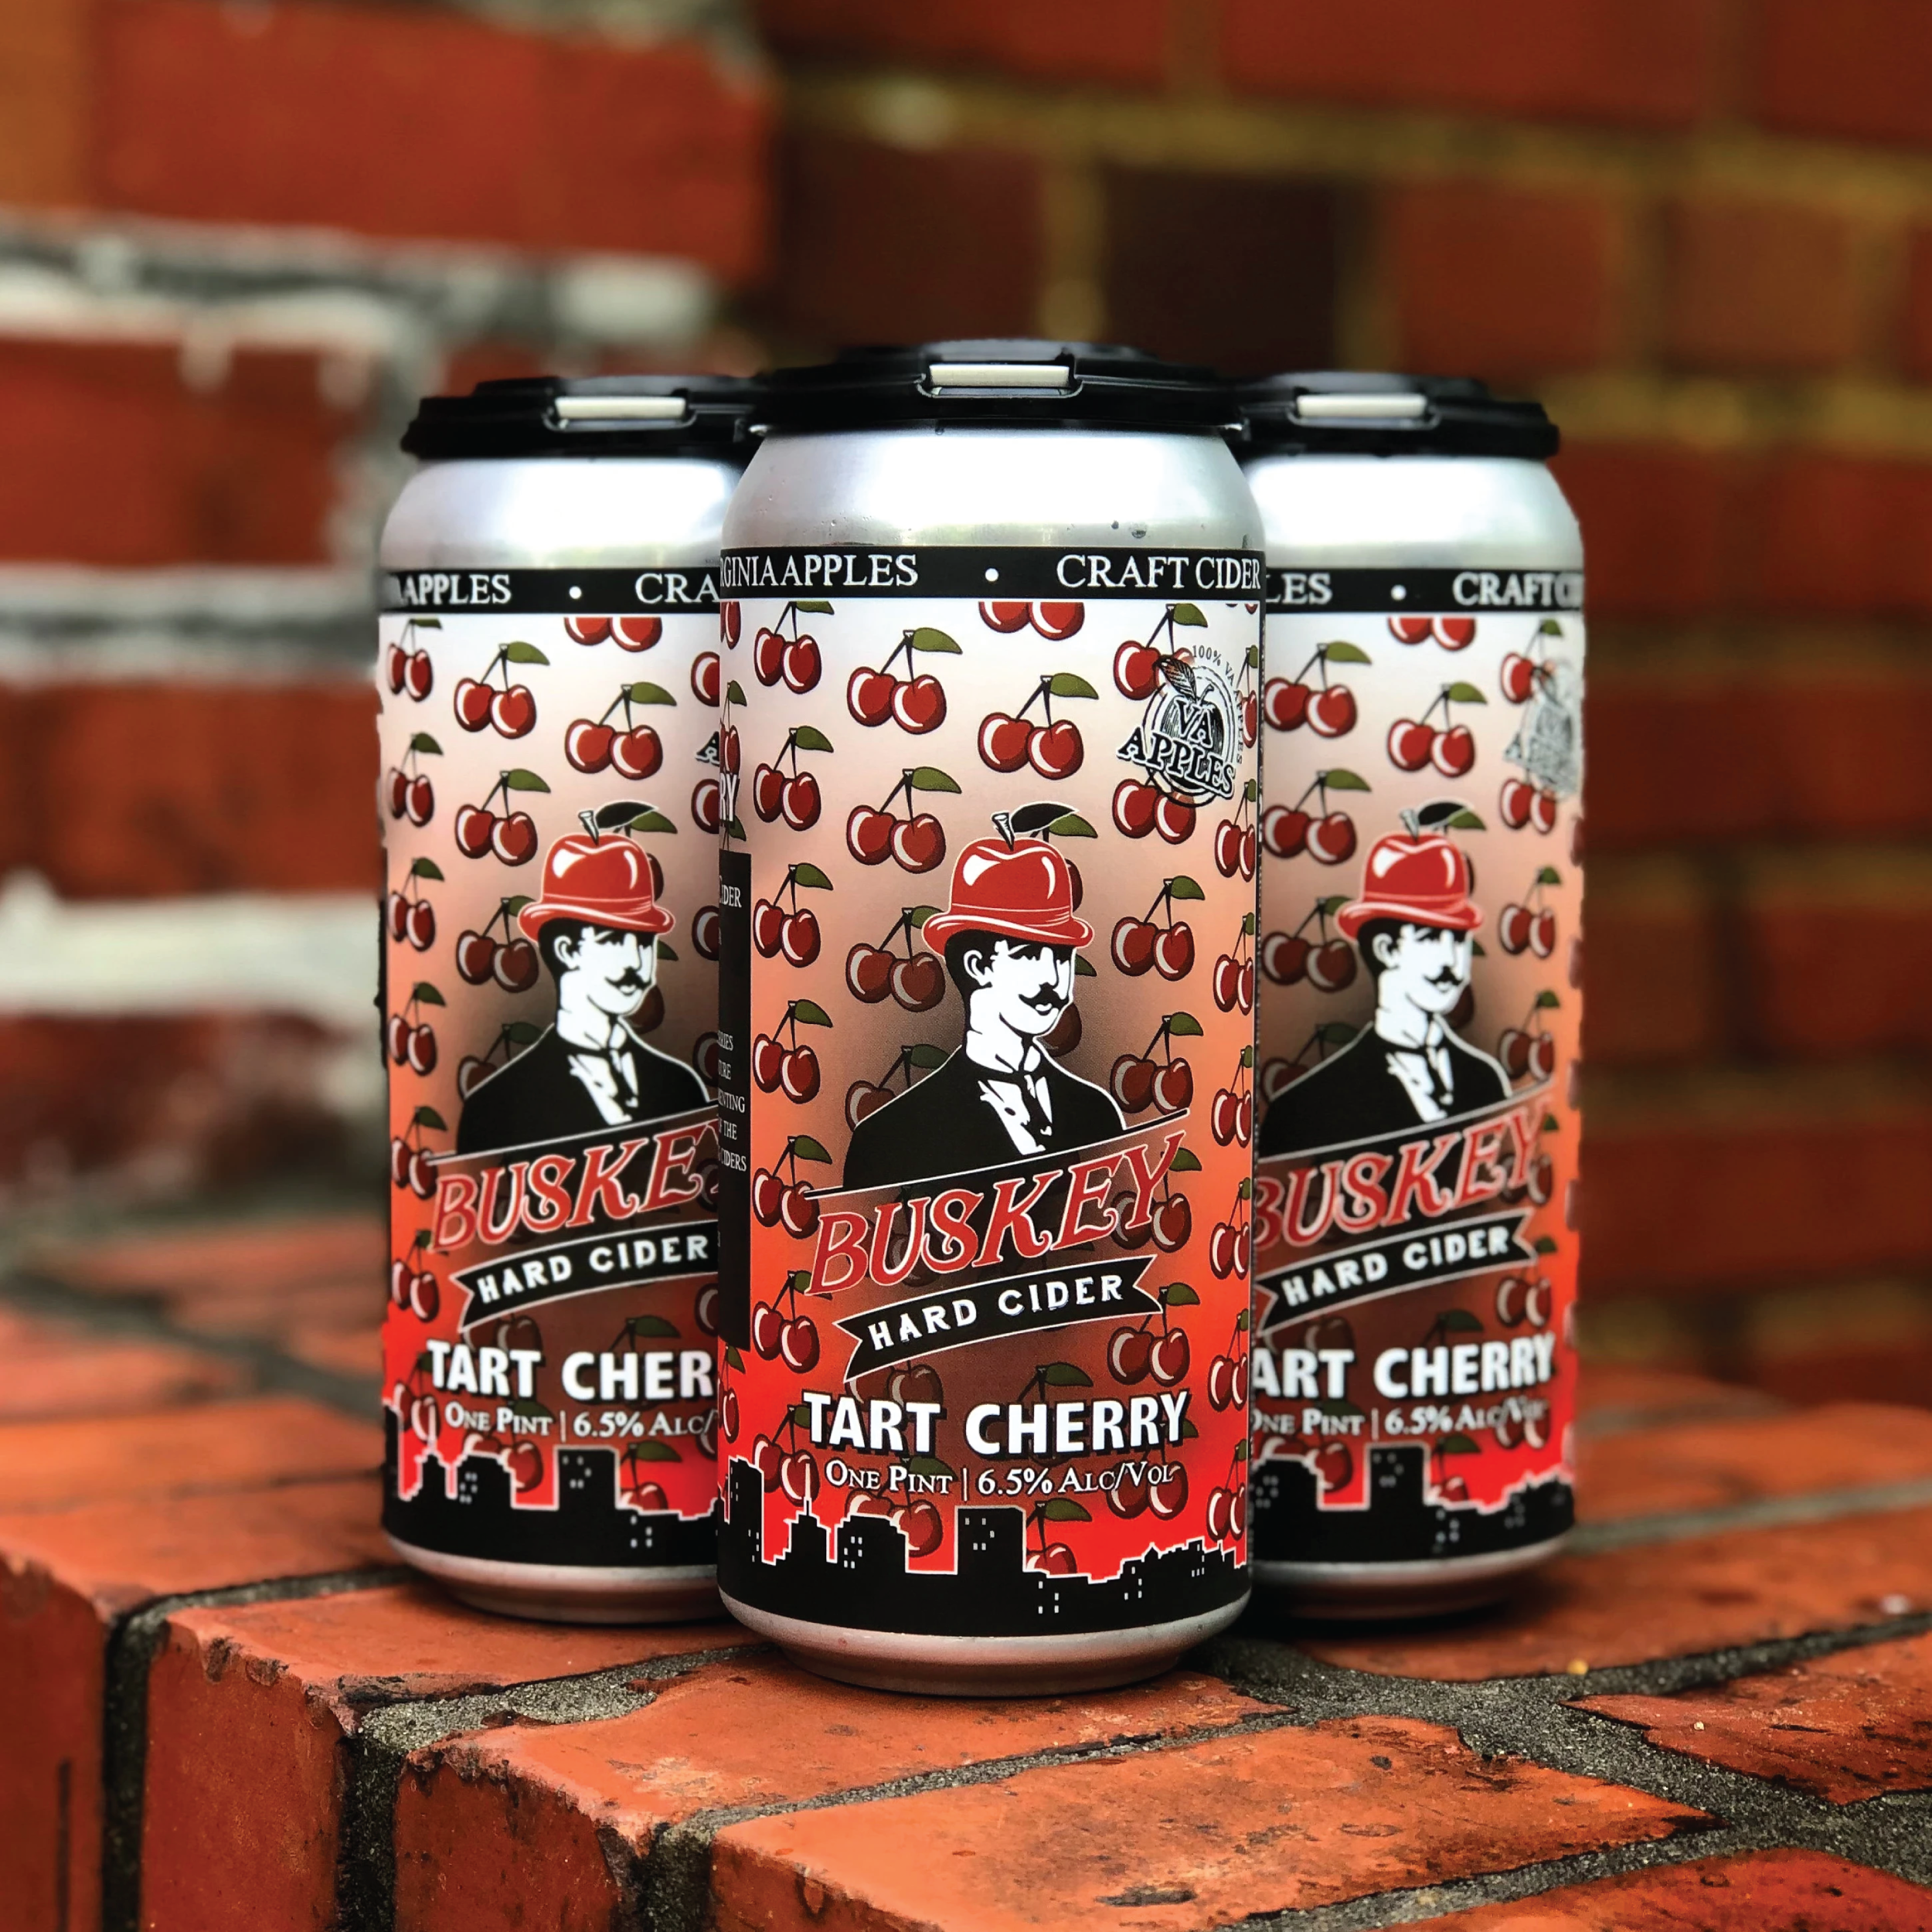 16oz 4-pack of Buskey Tart Cherry Cider cans